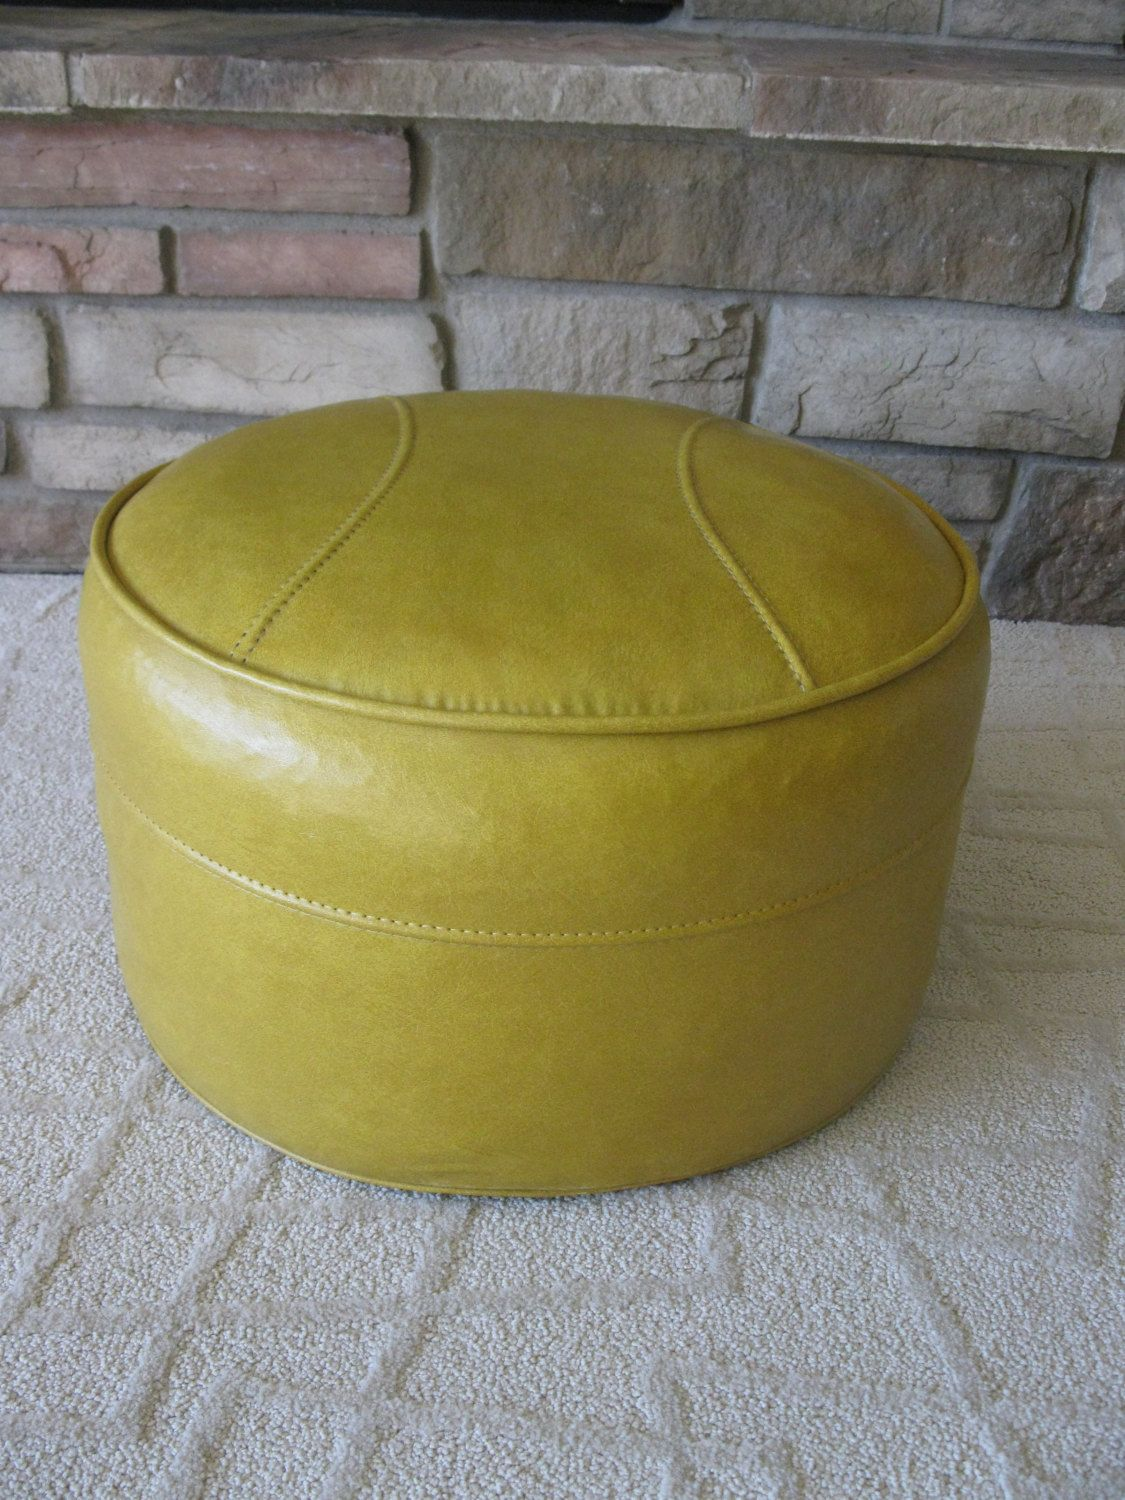 Butterscotch Yellow Ottoman Footstool Hassock Faux Leather Naugahyde Round Hassock Harvest Gold Mid Cent Storage Ottoman Yellow Storage Yellow Ottoman